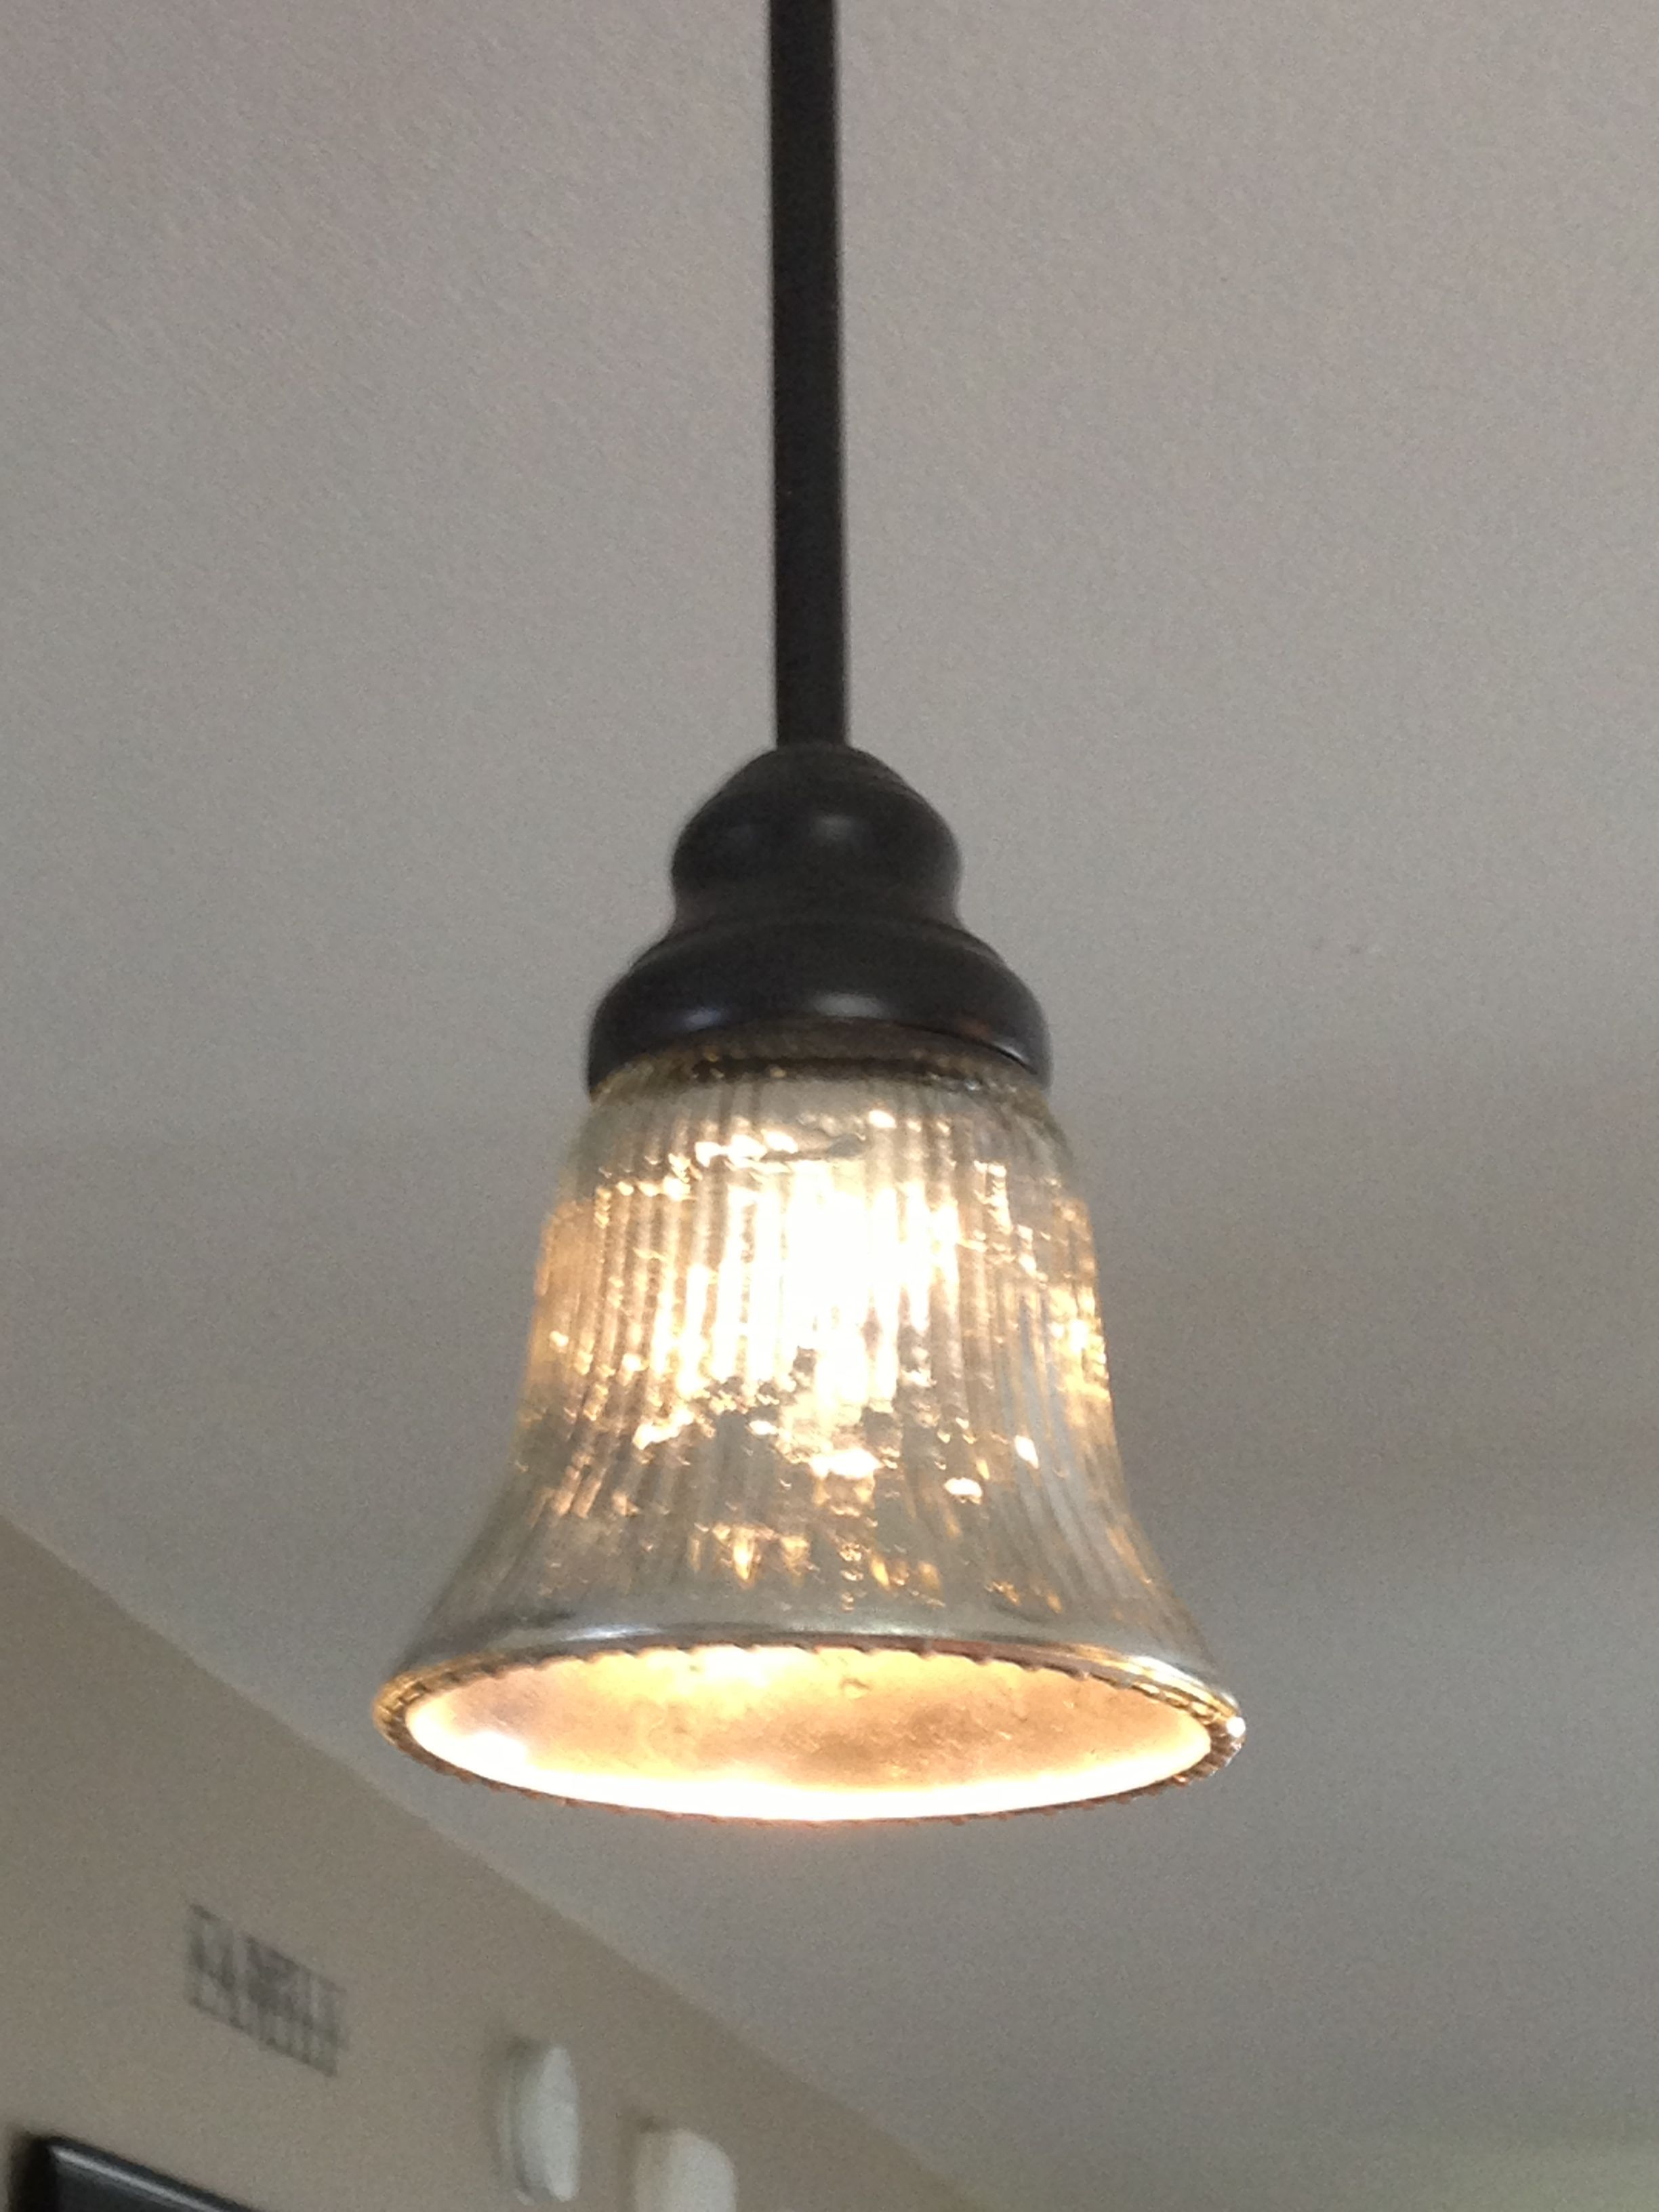 DIY mercury glass pendant shade - Krylon Looking Glass spray paint